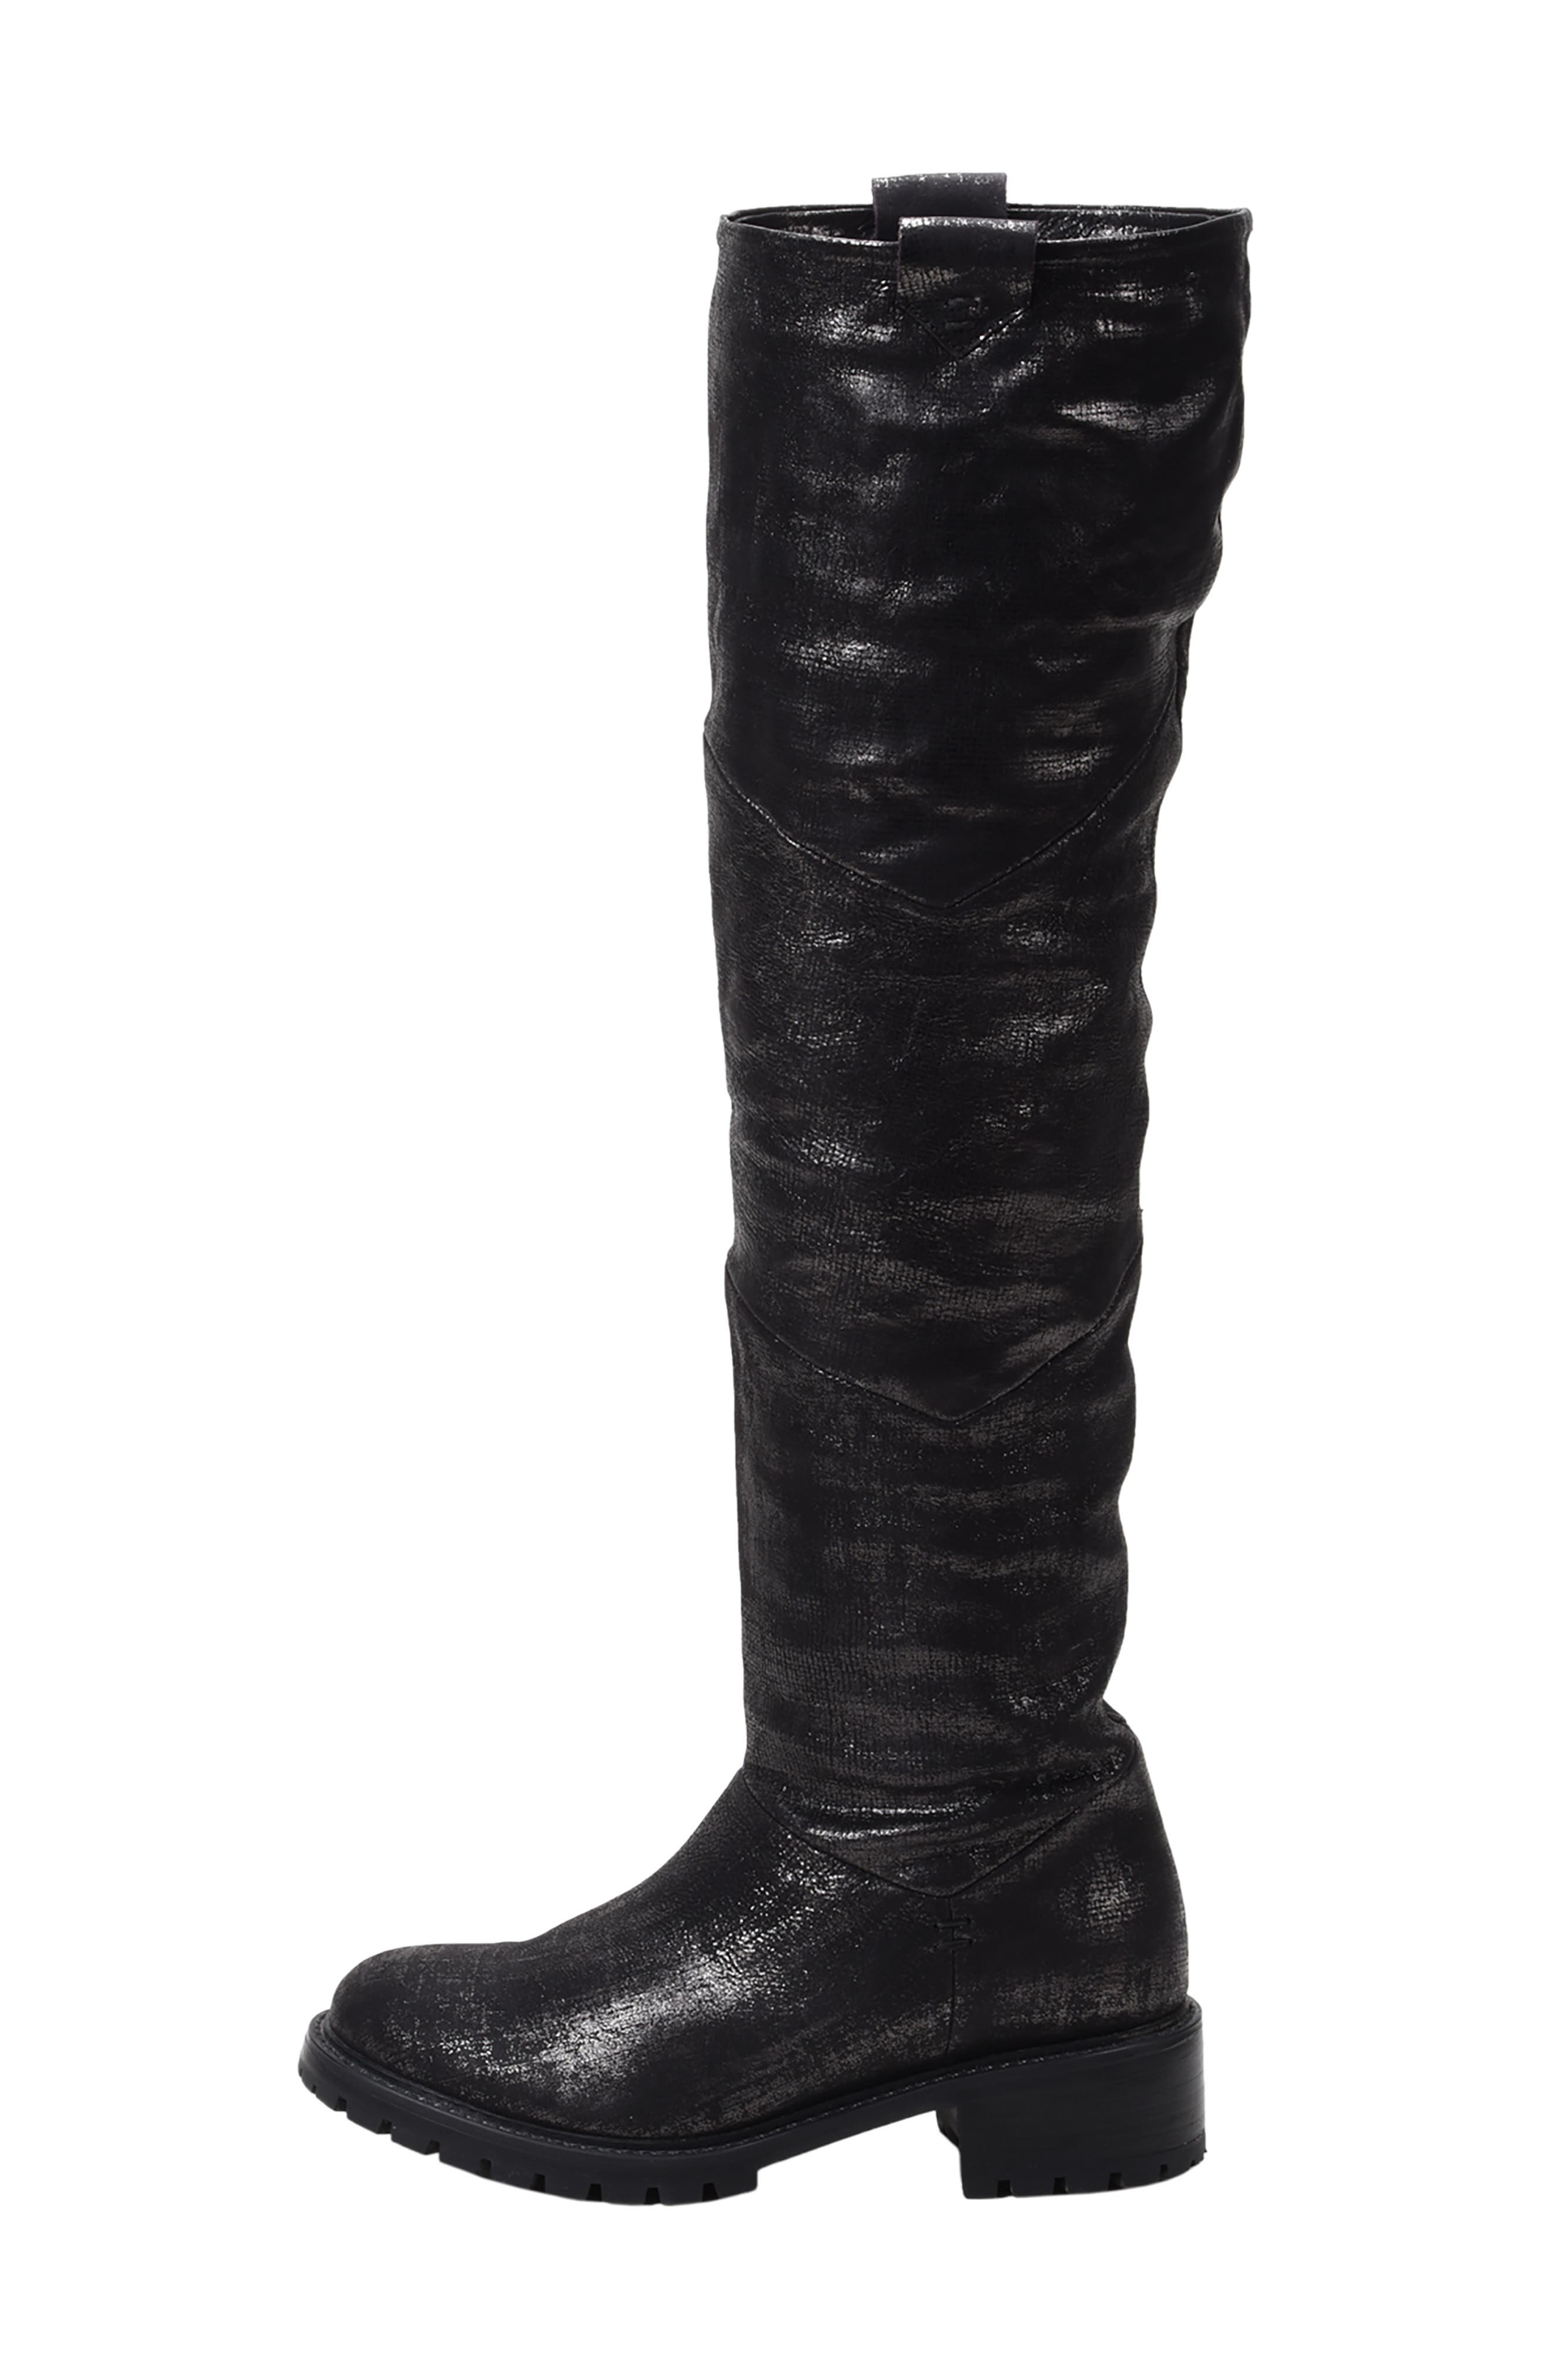 Elena Waterproof Genuine Shearling Lined Knee High Boot,                             Alternate thumbnail 2, color,                             BLACK/ SILVER LEATHER